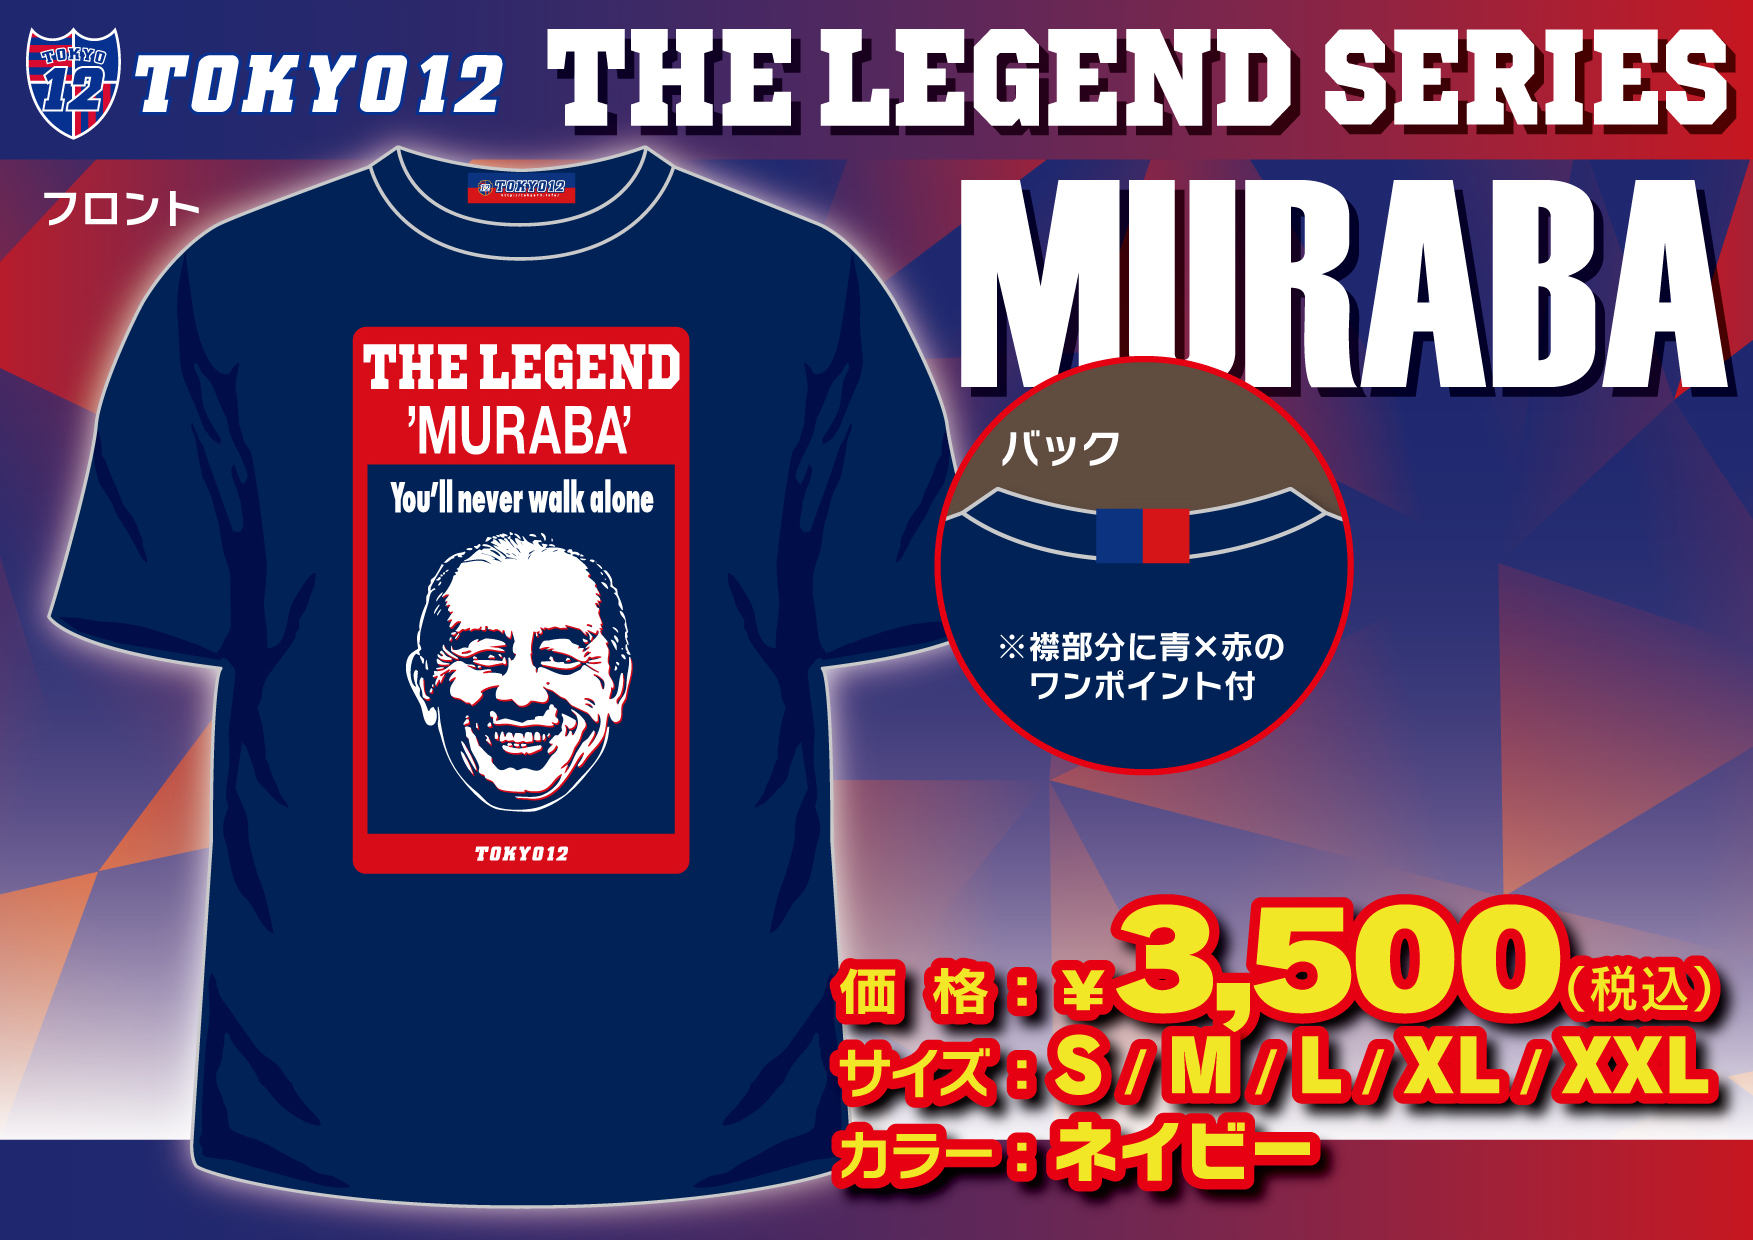 THE LEGEND SERIES MURABA Tシャツ